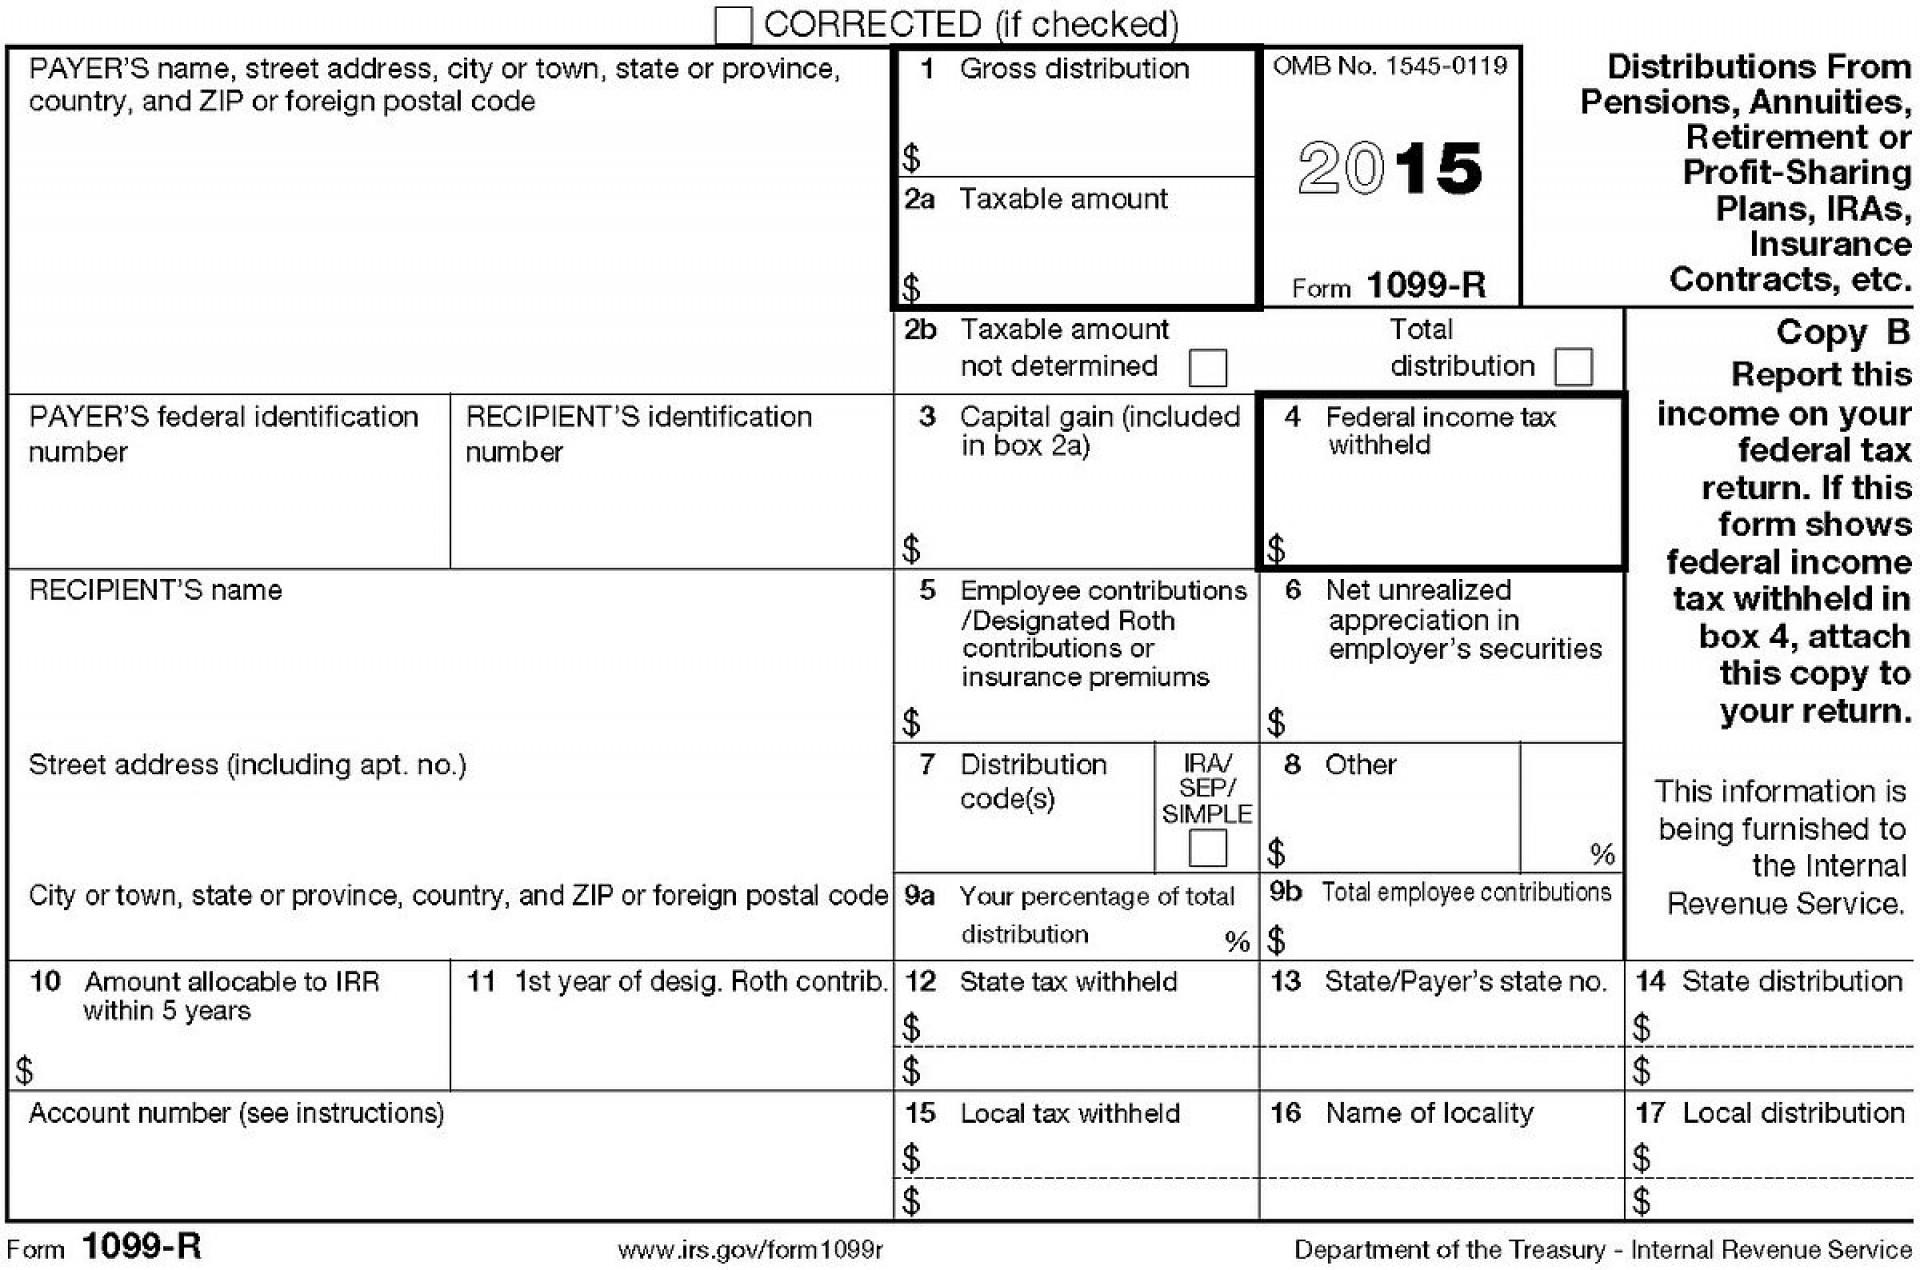 Irs.gov Form 1099 R Instructions